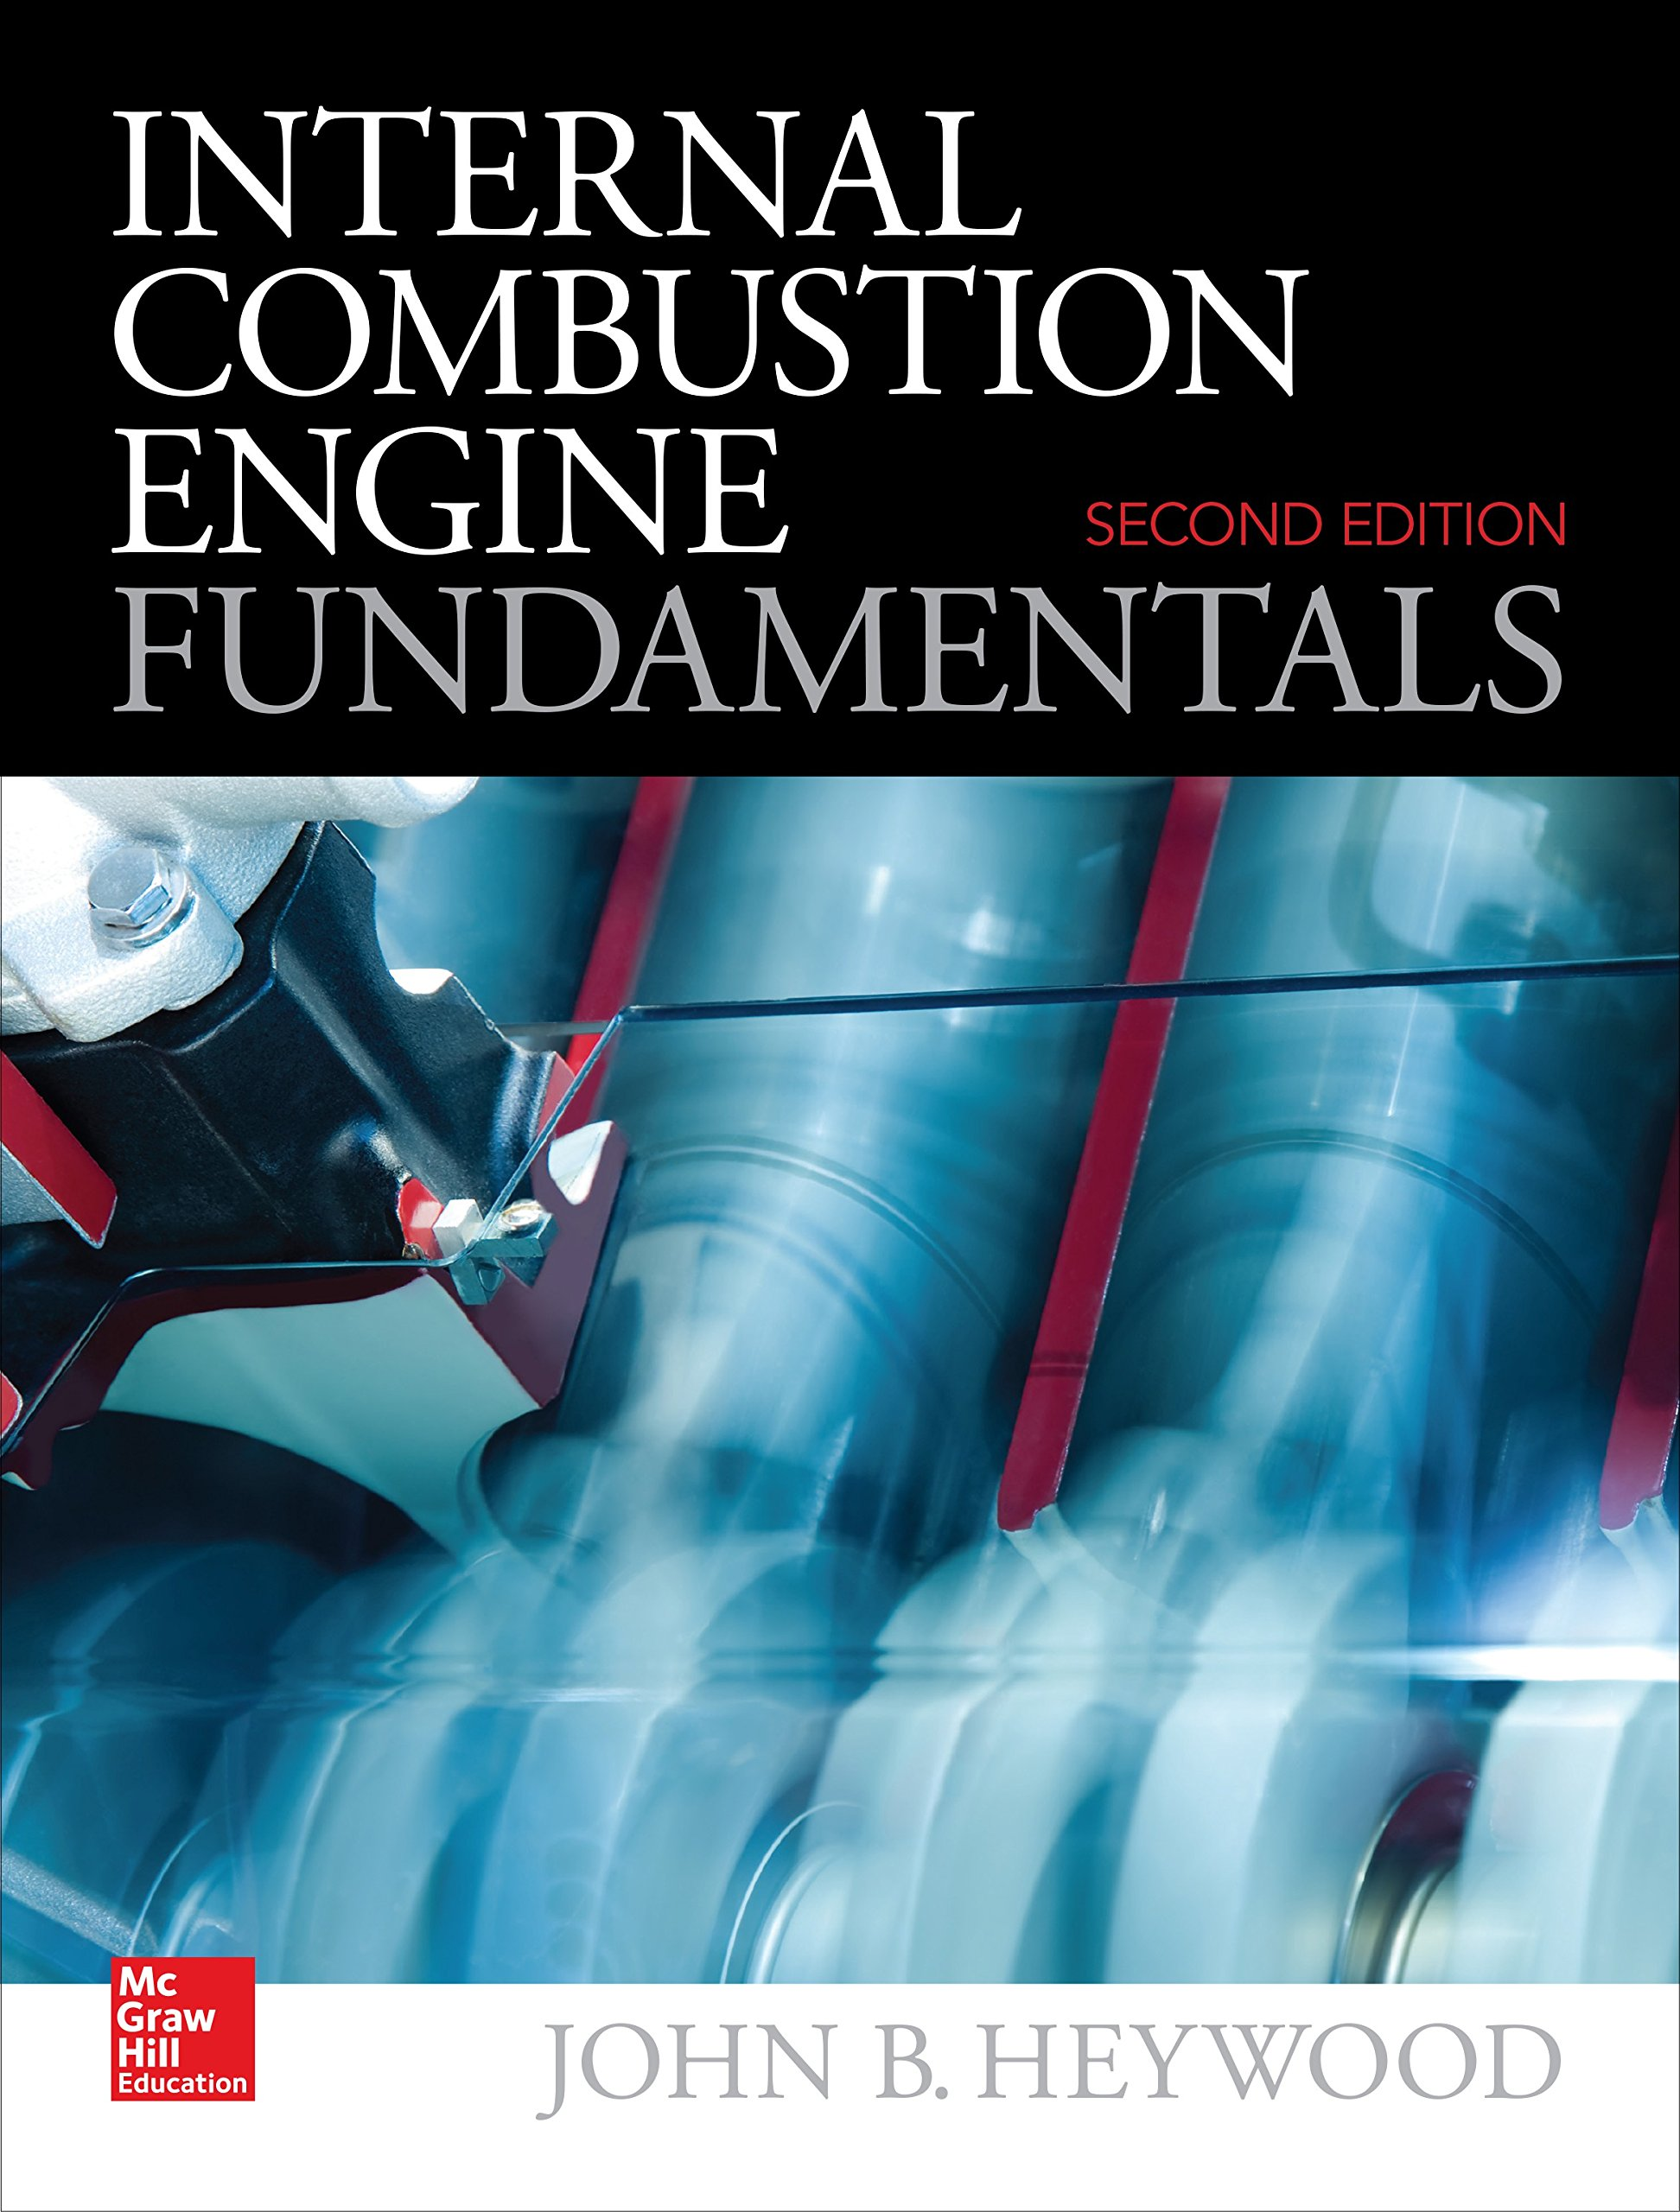 Amazon Com Internal Combustion Engine Fundamentals 2e Ebook Heywood John Kindle Store